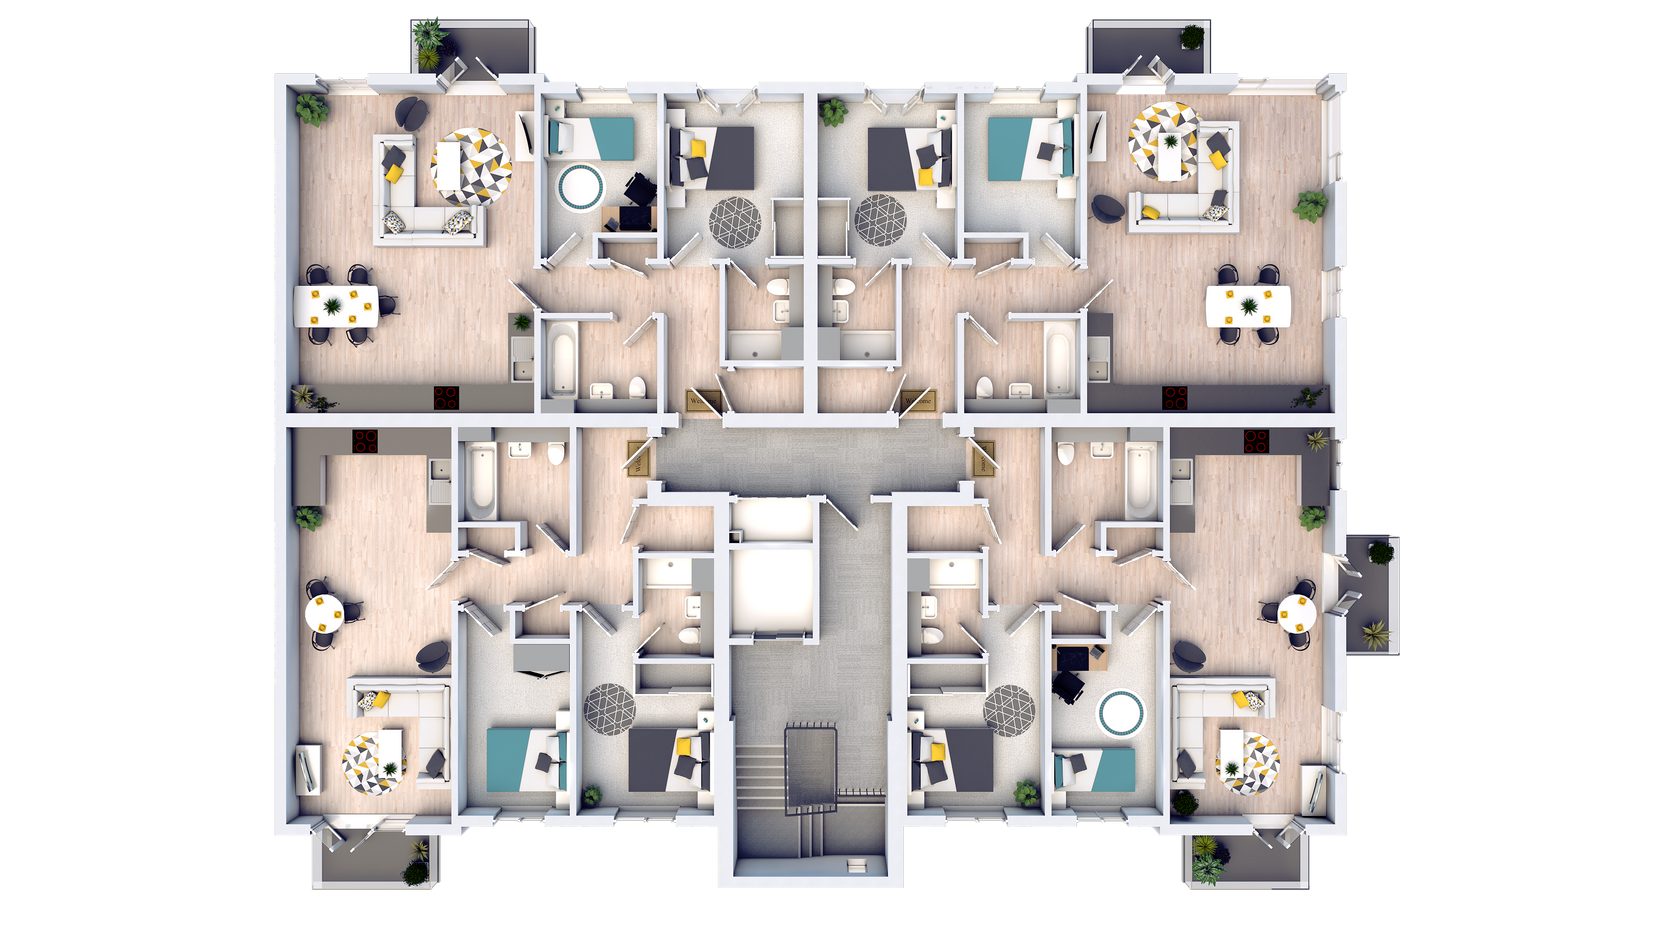 The Solus Apartments first floor preliminary floorplans